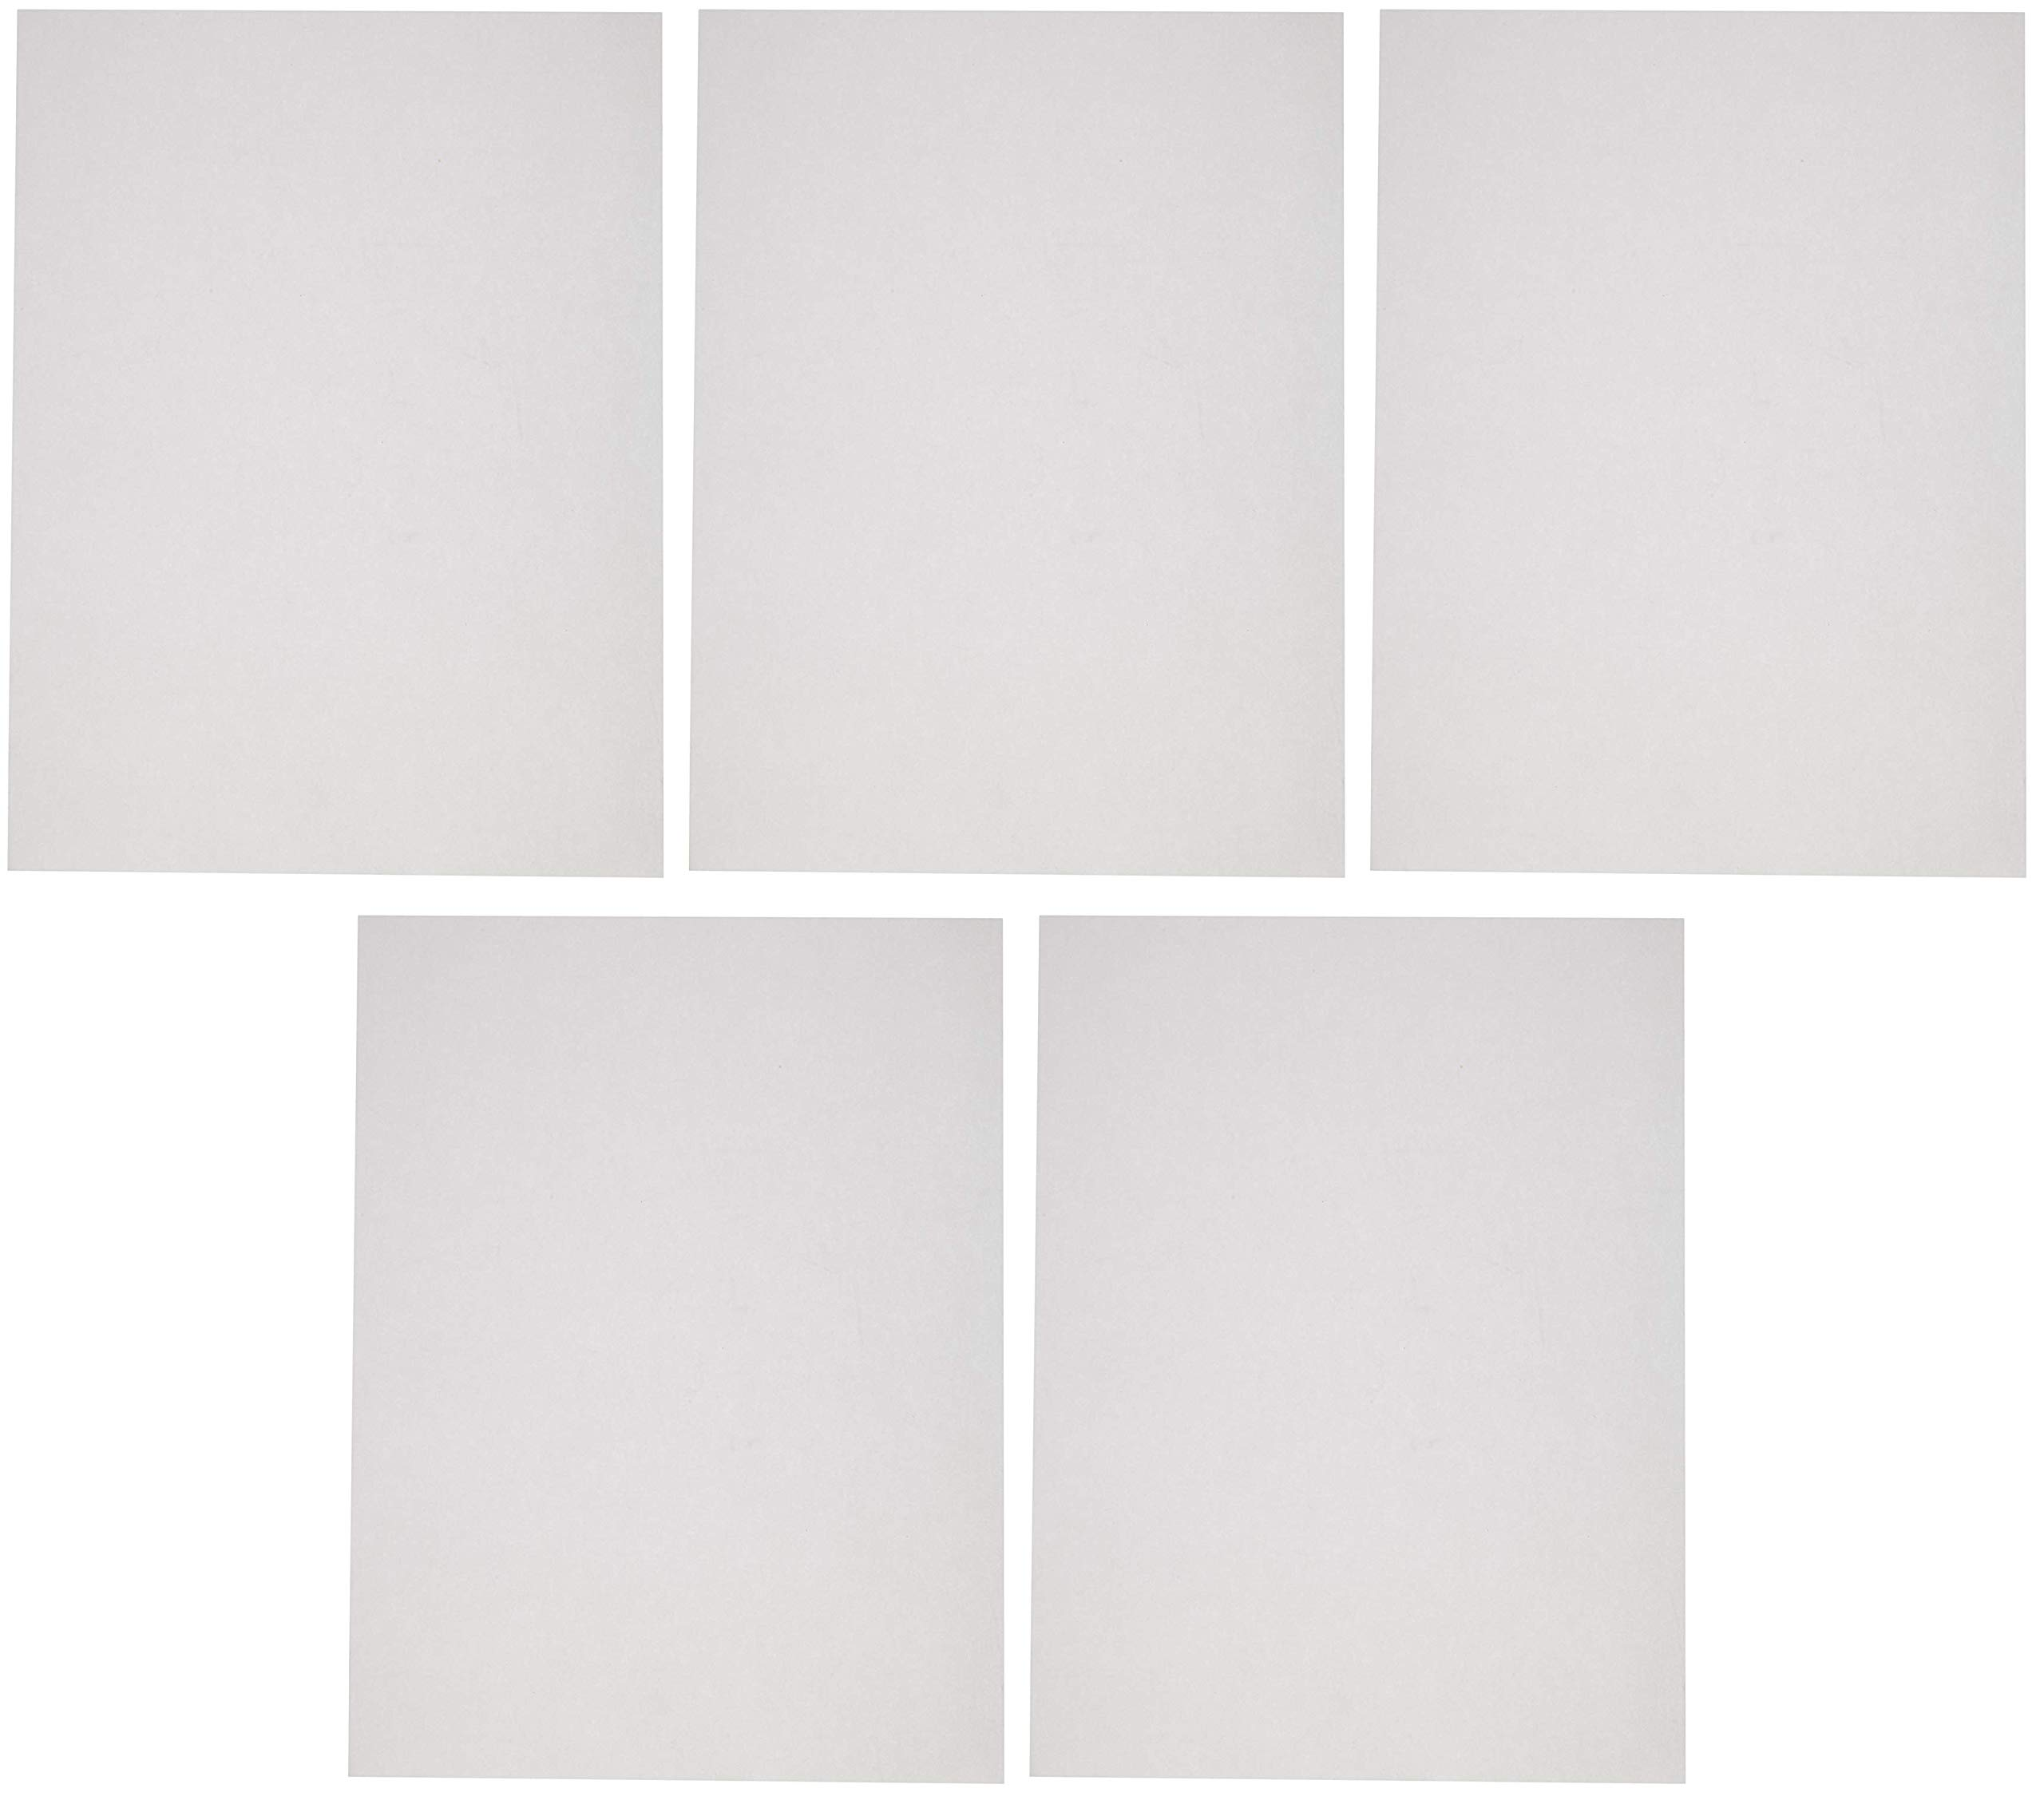 Sax Sulphite Drawing Paper, 50 lb, 9 x 12 Inches, Extra-White, Pack of 500 (Вundlе оf Fіvе)